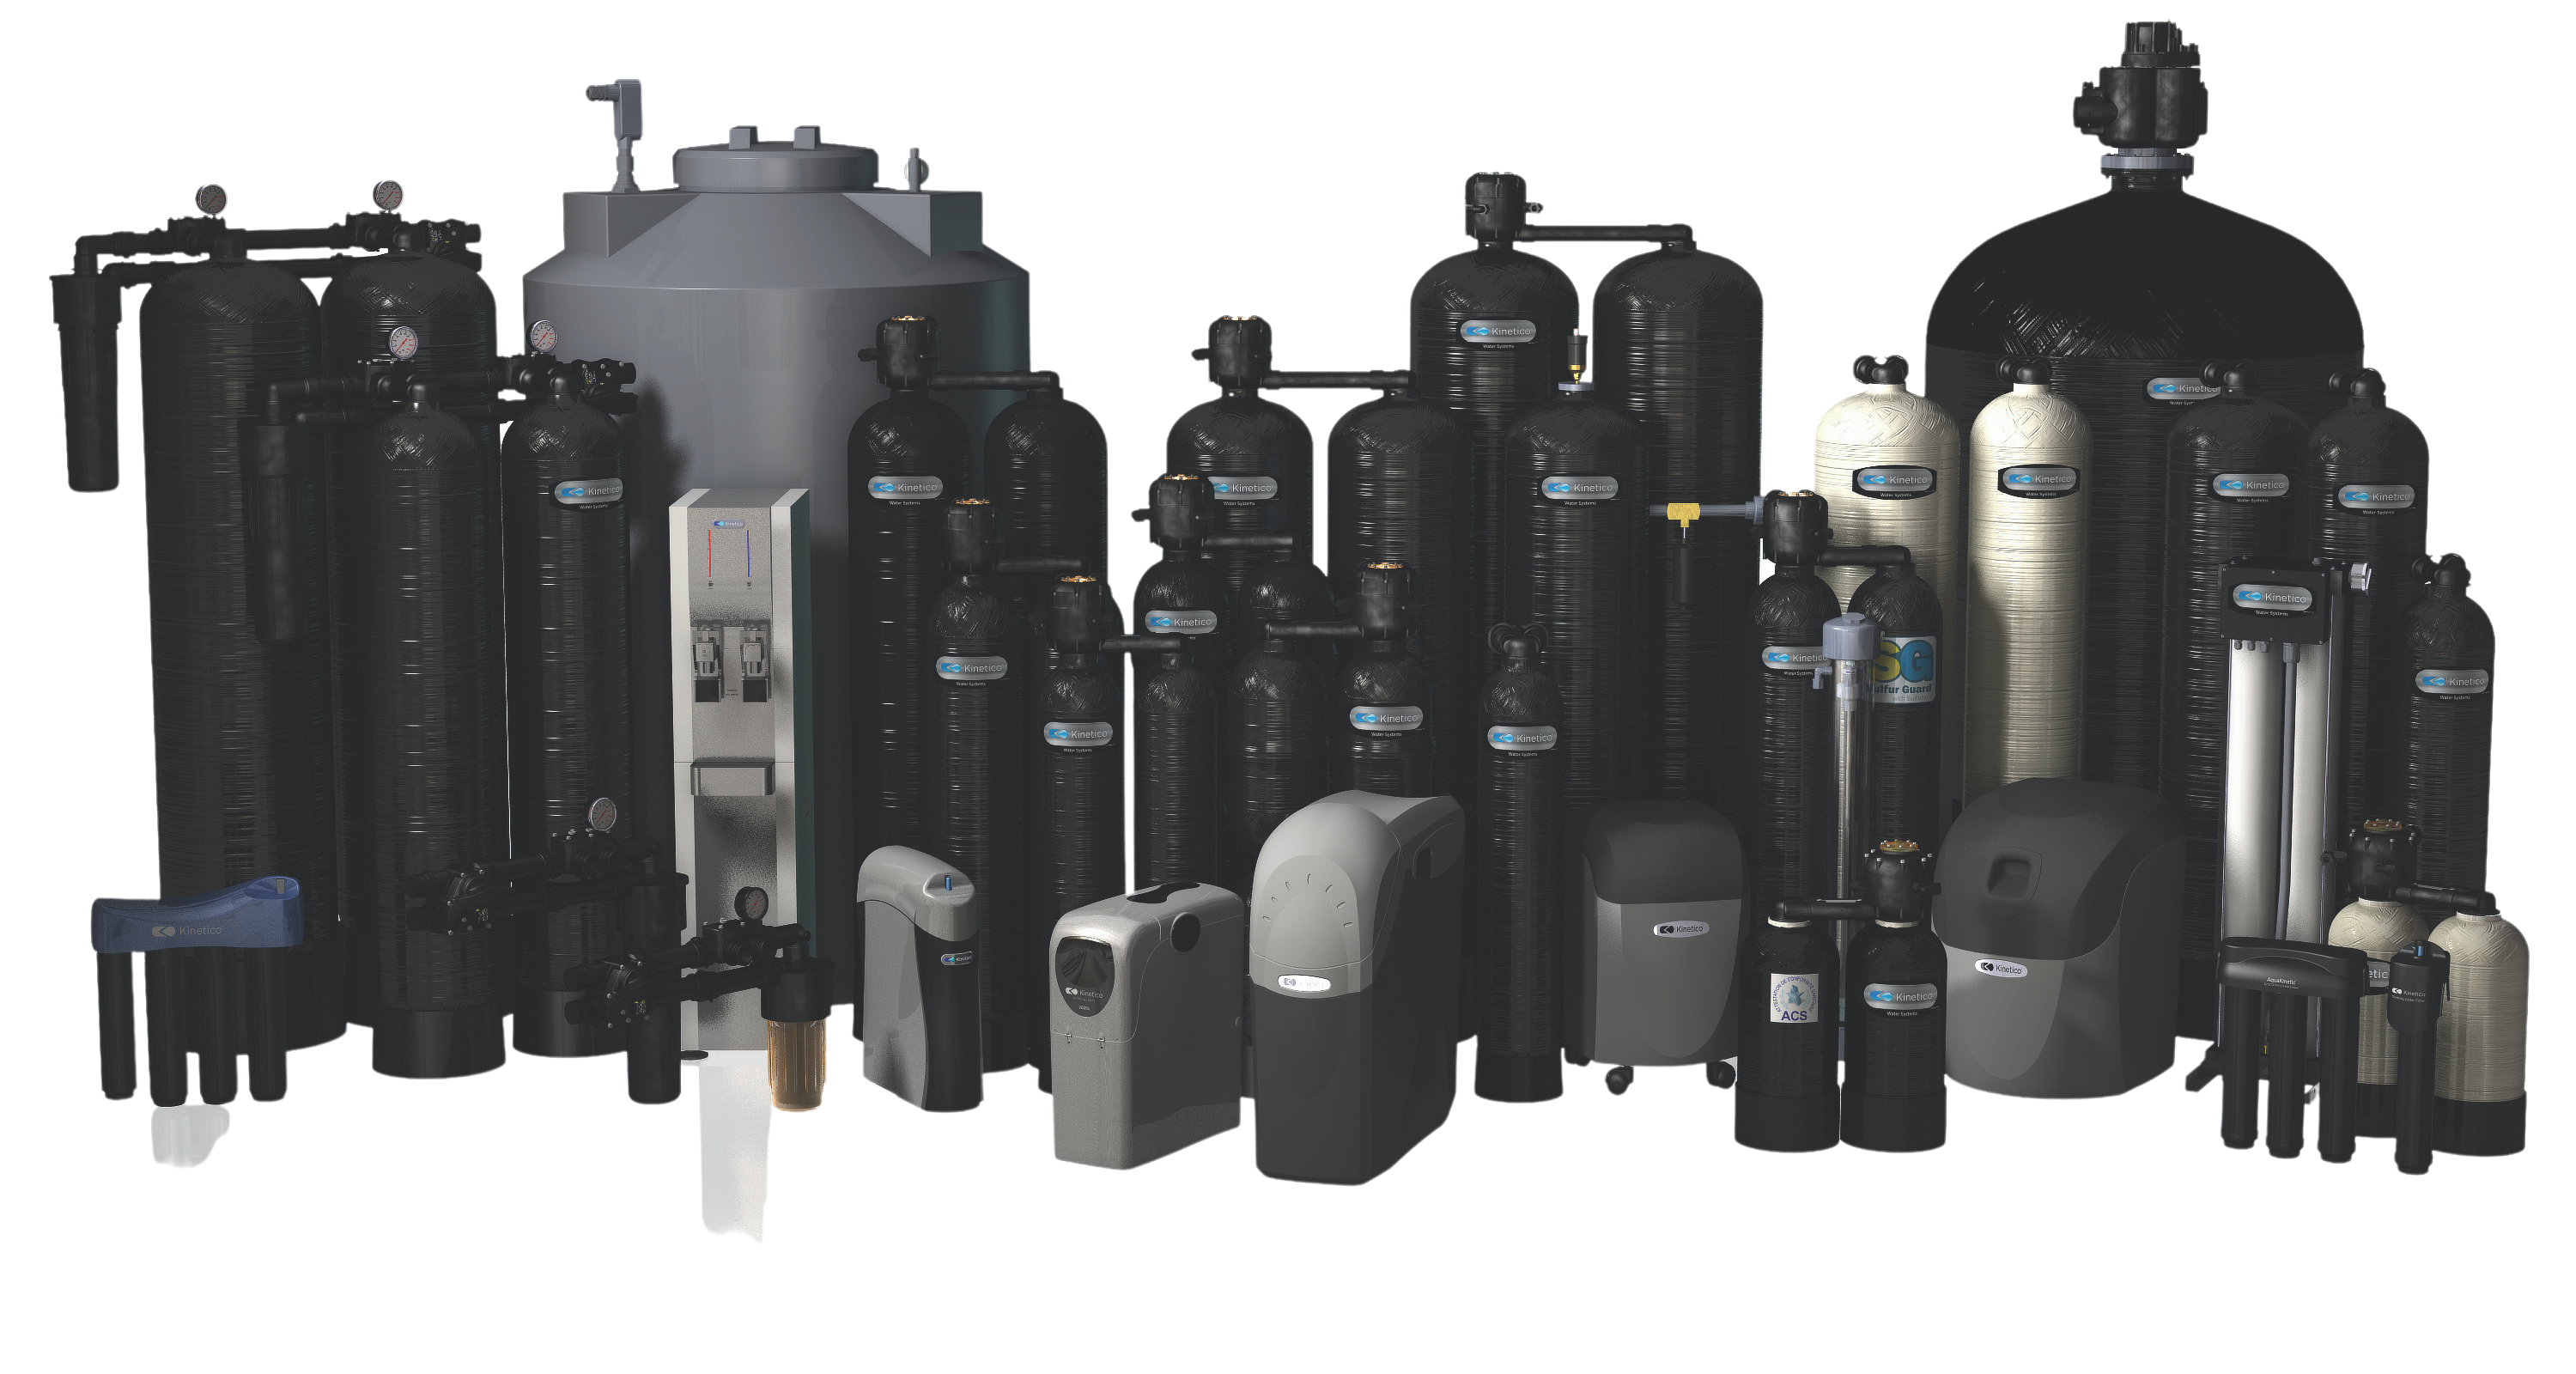 Kinetio Water Purification and Filtration Systems - Repair and Maintenance